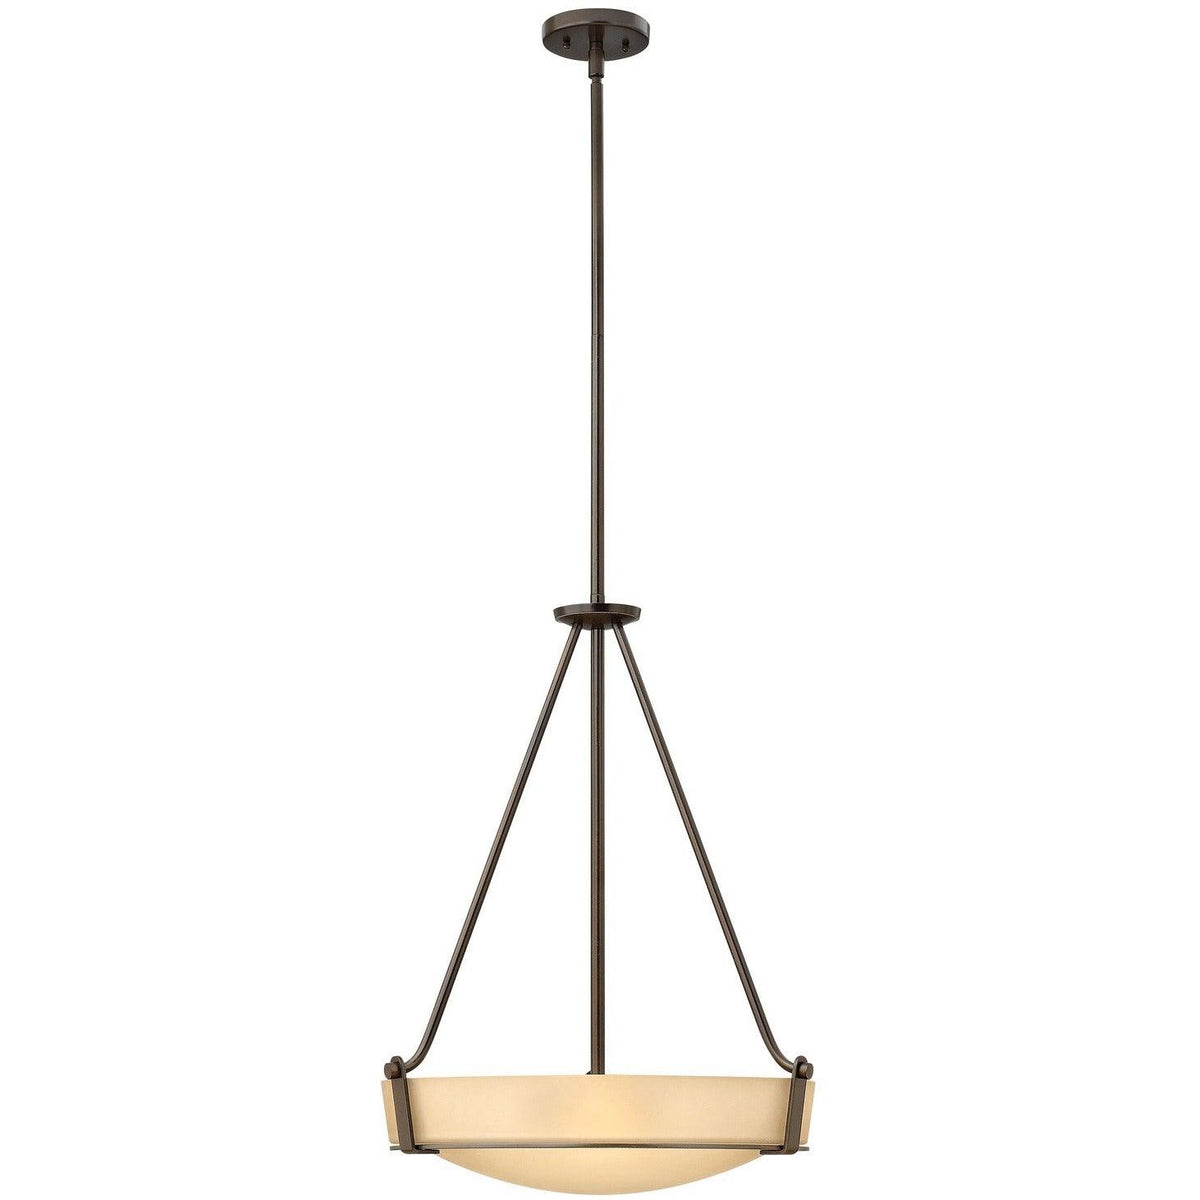 Hinkley Canada - 3222OB - Four Light Foyer Pendant - Hathaway - Olde Bronze